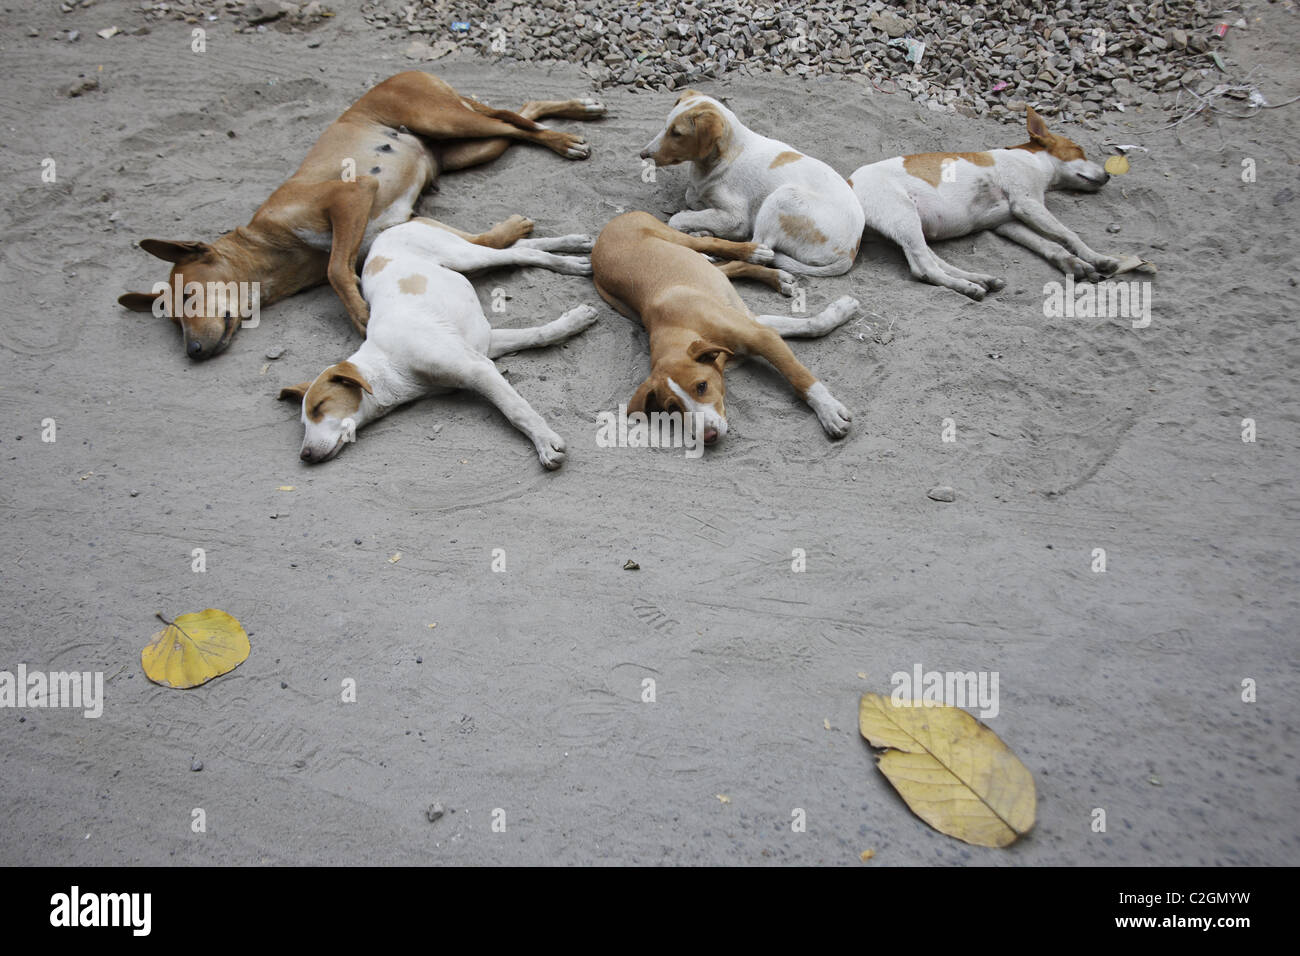 IND, India,20110310, pack of dogs - Stock Image